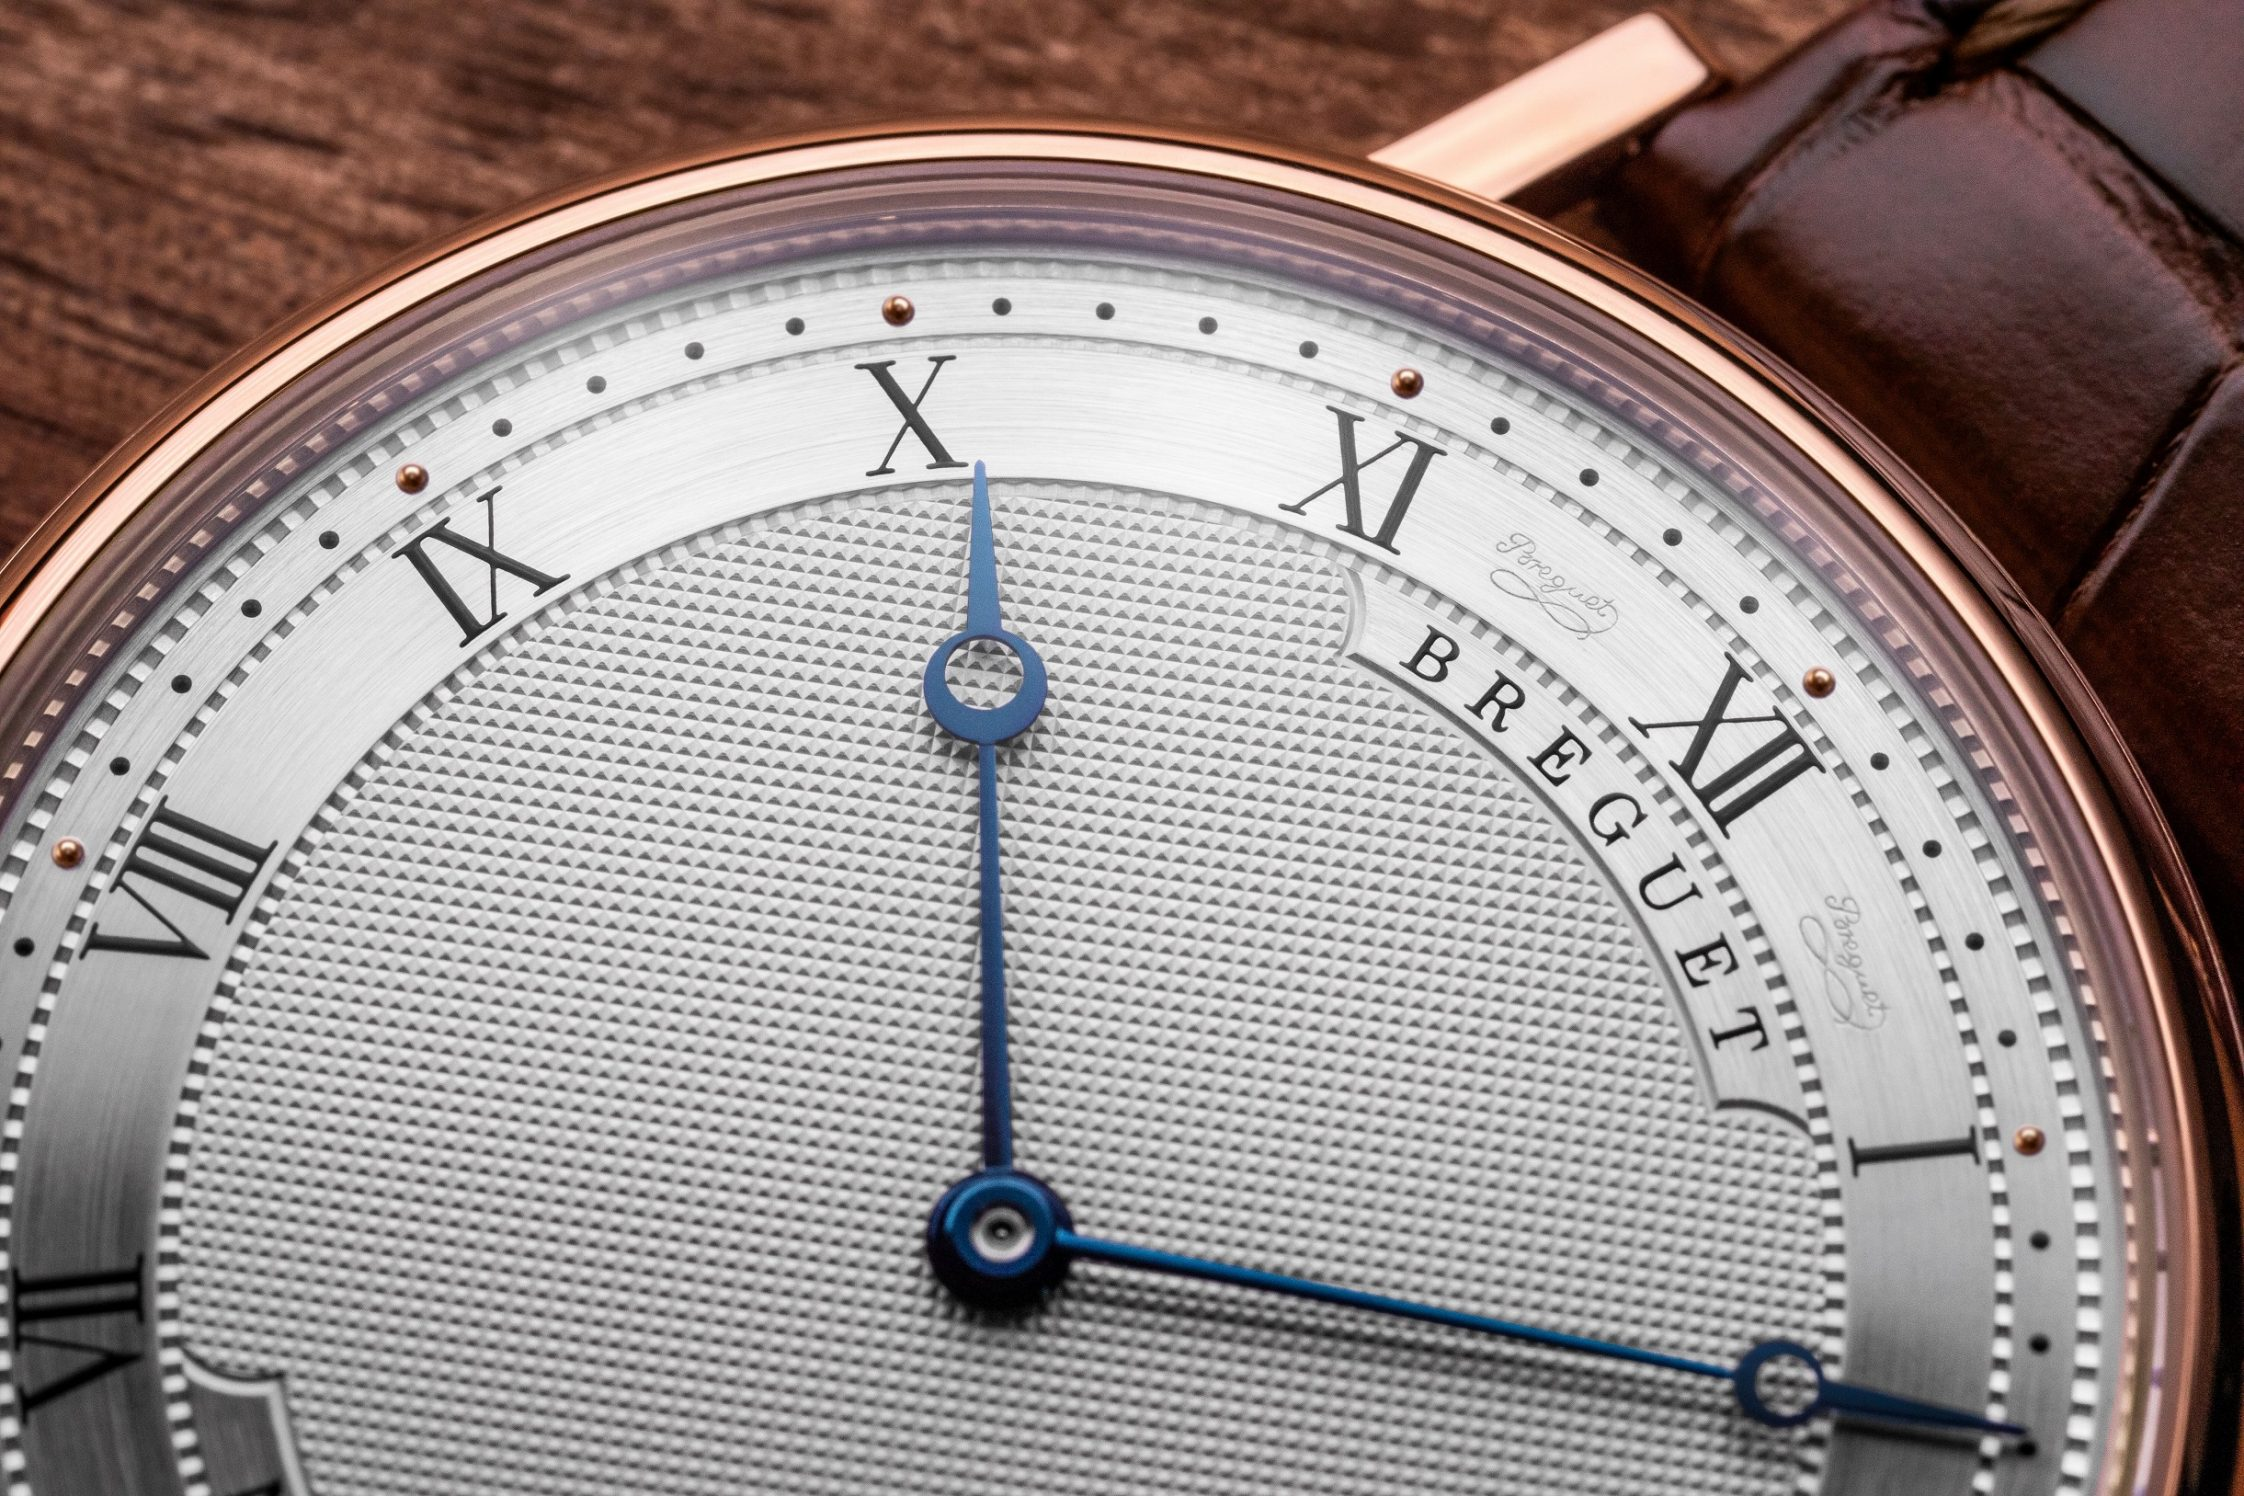 Breguet and the Royals